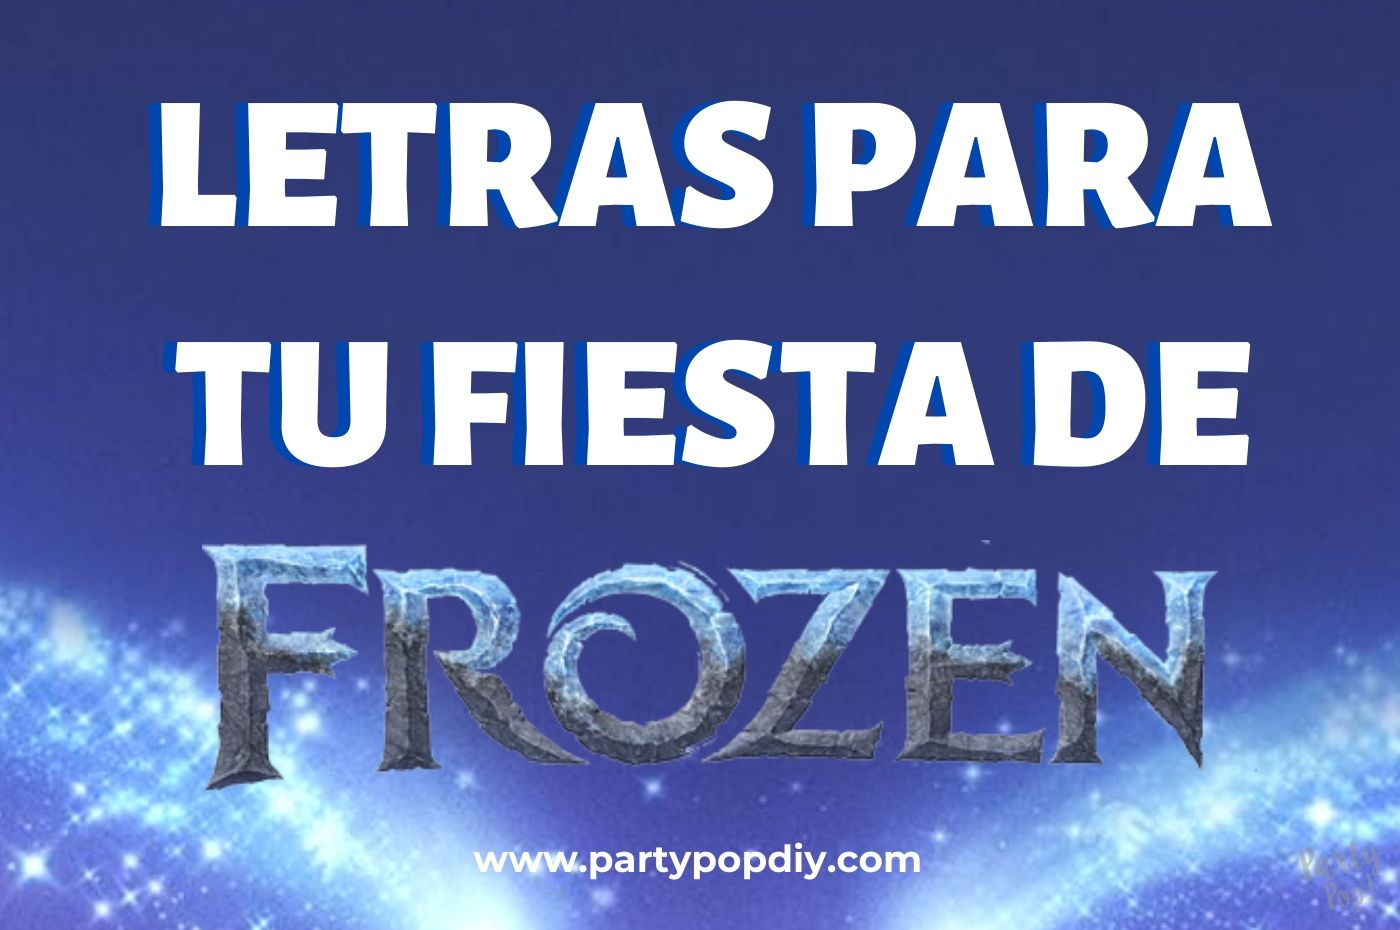 Letras Frozen Party Pop